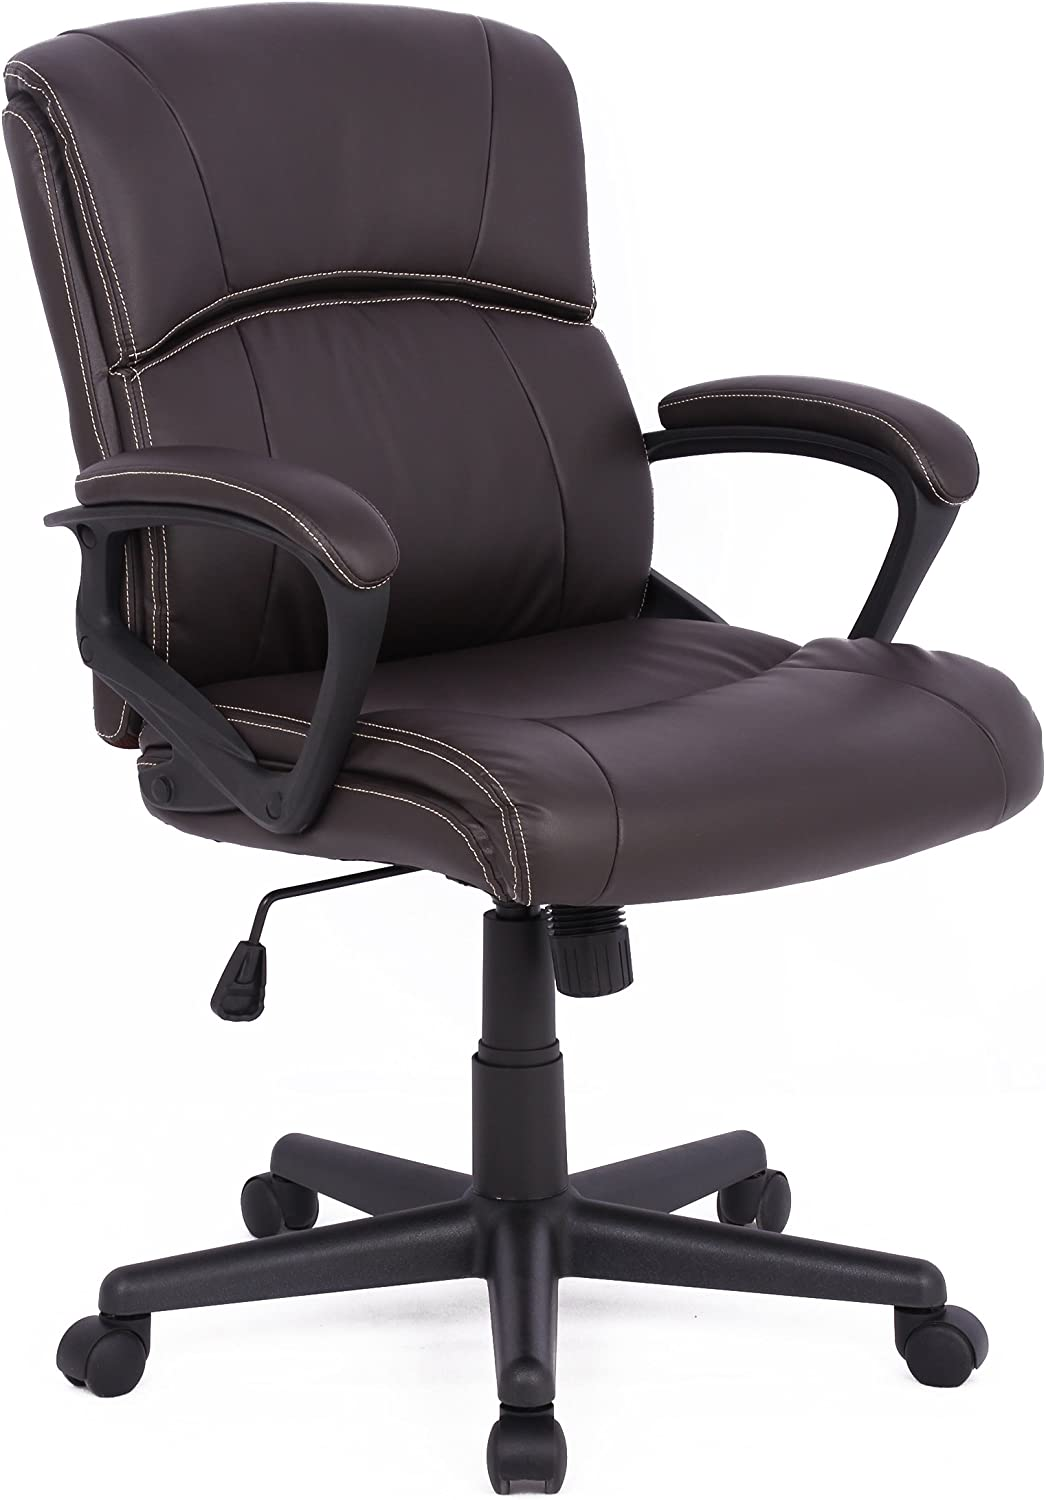 Soges Modern Executive Swivel Chair Leather Chair Office Chair with BIFMA Certification Gaming Chair Brown,HLC-1807-5-CA